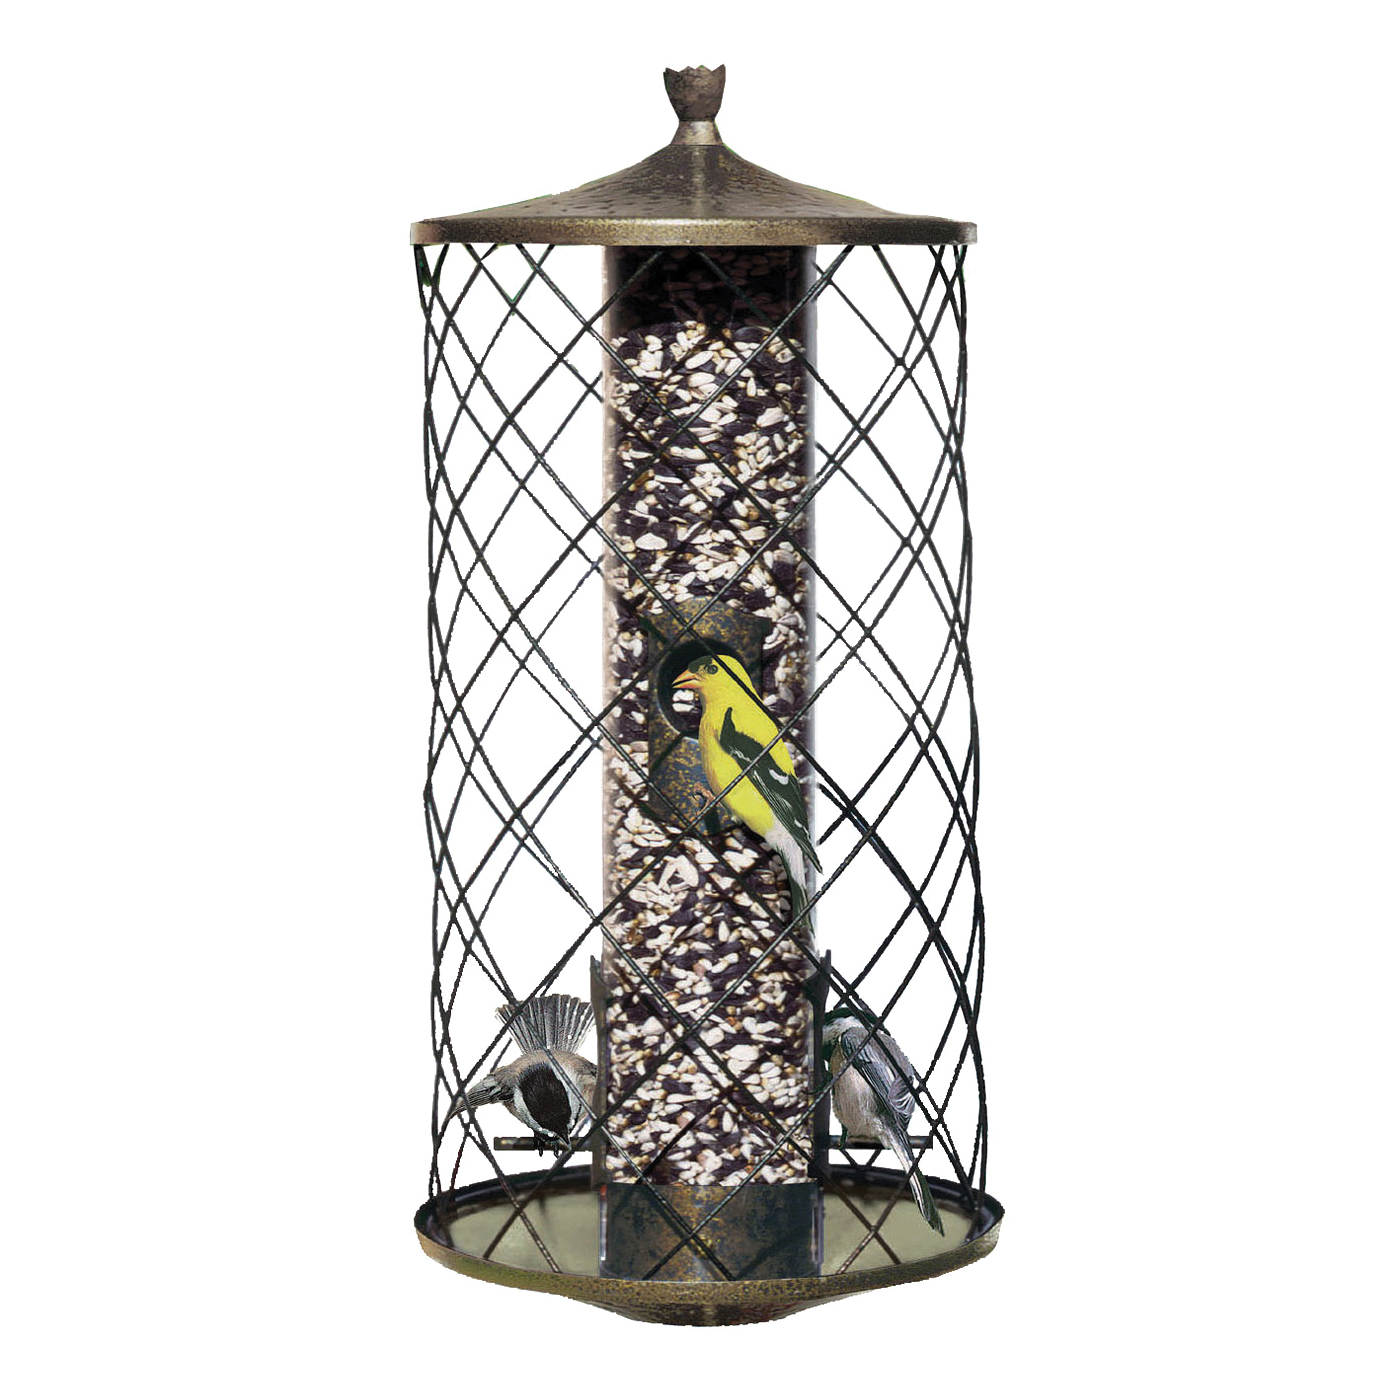 Picture of Perky-Pet 735 Wild Bird Feeder, 15-1/2 in H, 3 lb, Plastic, Black, Hanging Mounting